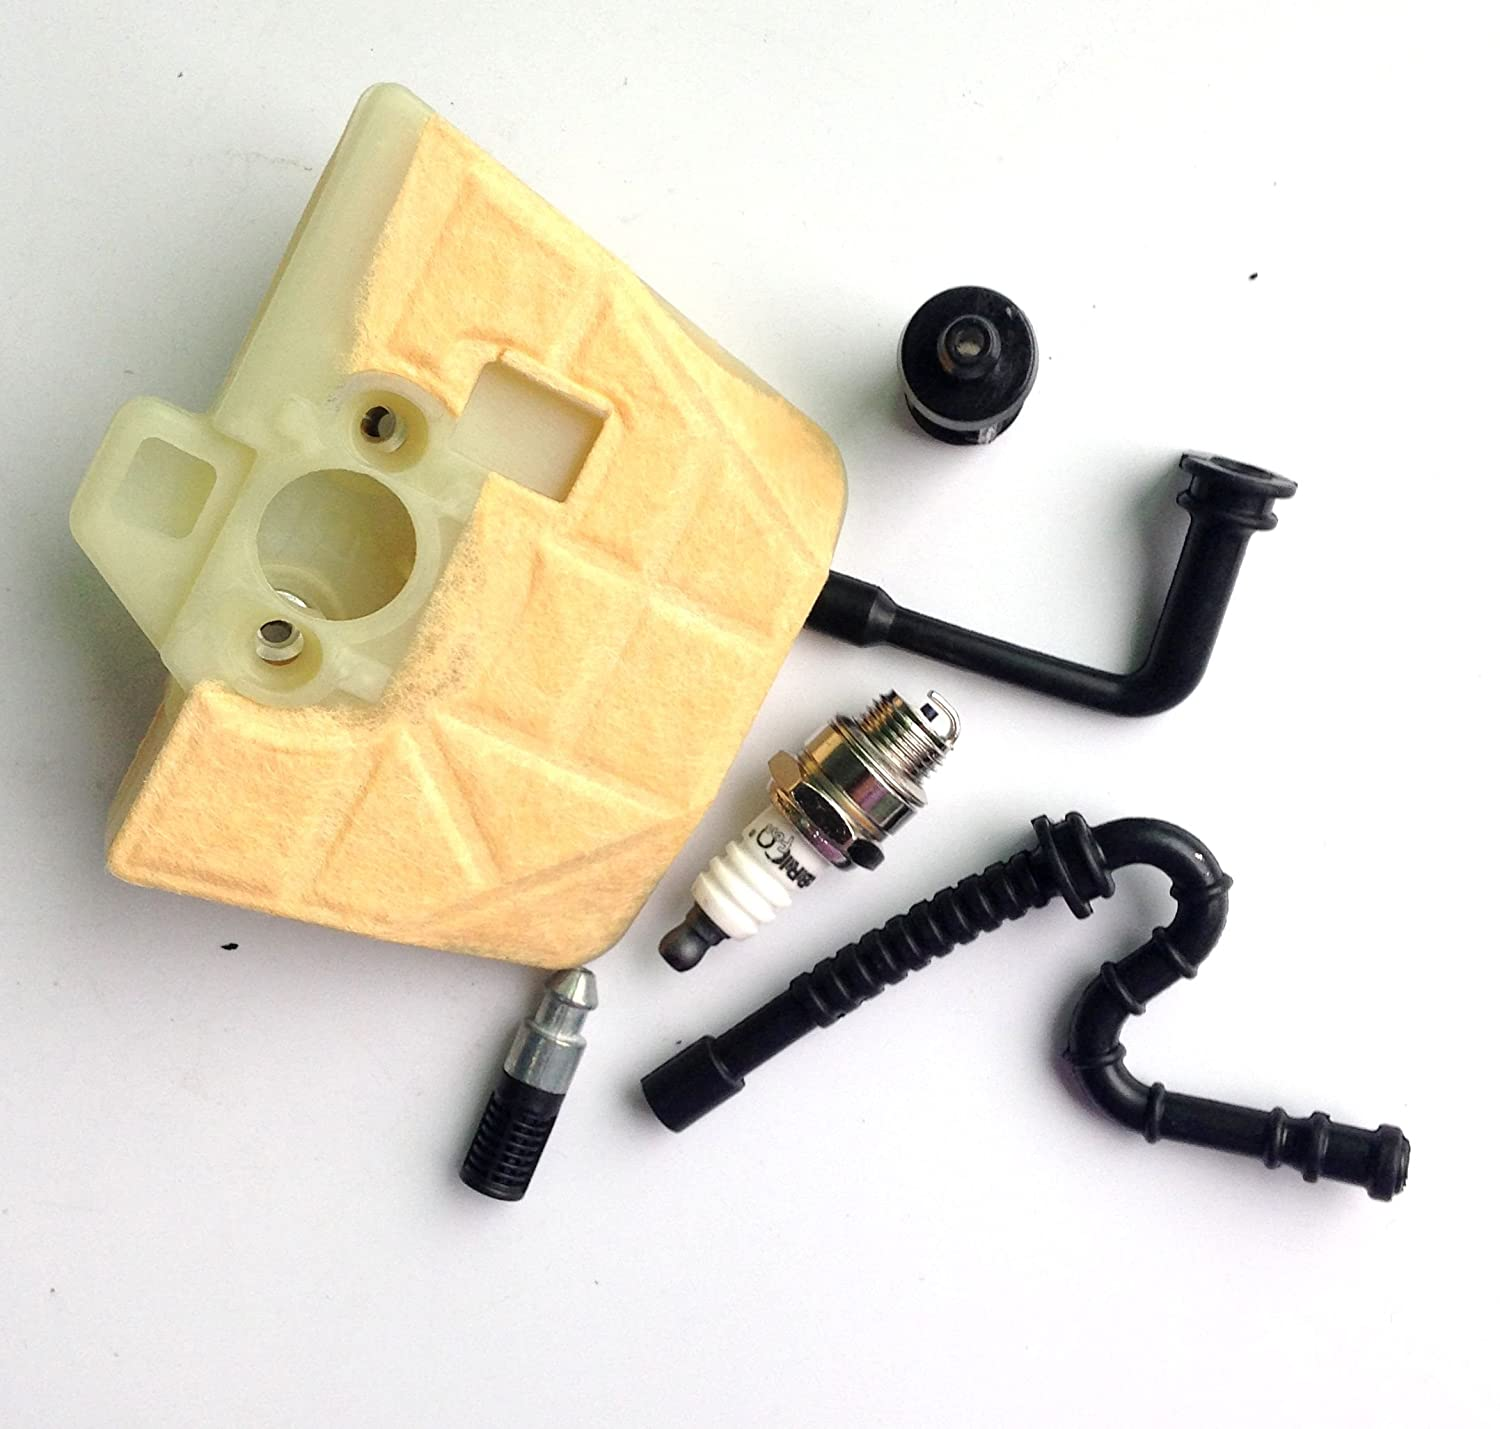 Podoy 034 Air Filter For Stihl 036 Ms360 Ms340 Chainsaw Av Parts Diagram On 028 Carb Fuel Oil Line Tube Spark Plug Industrial Scientific